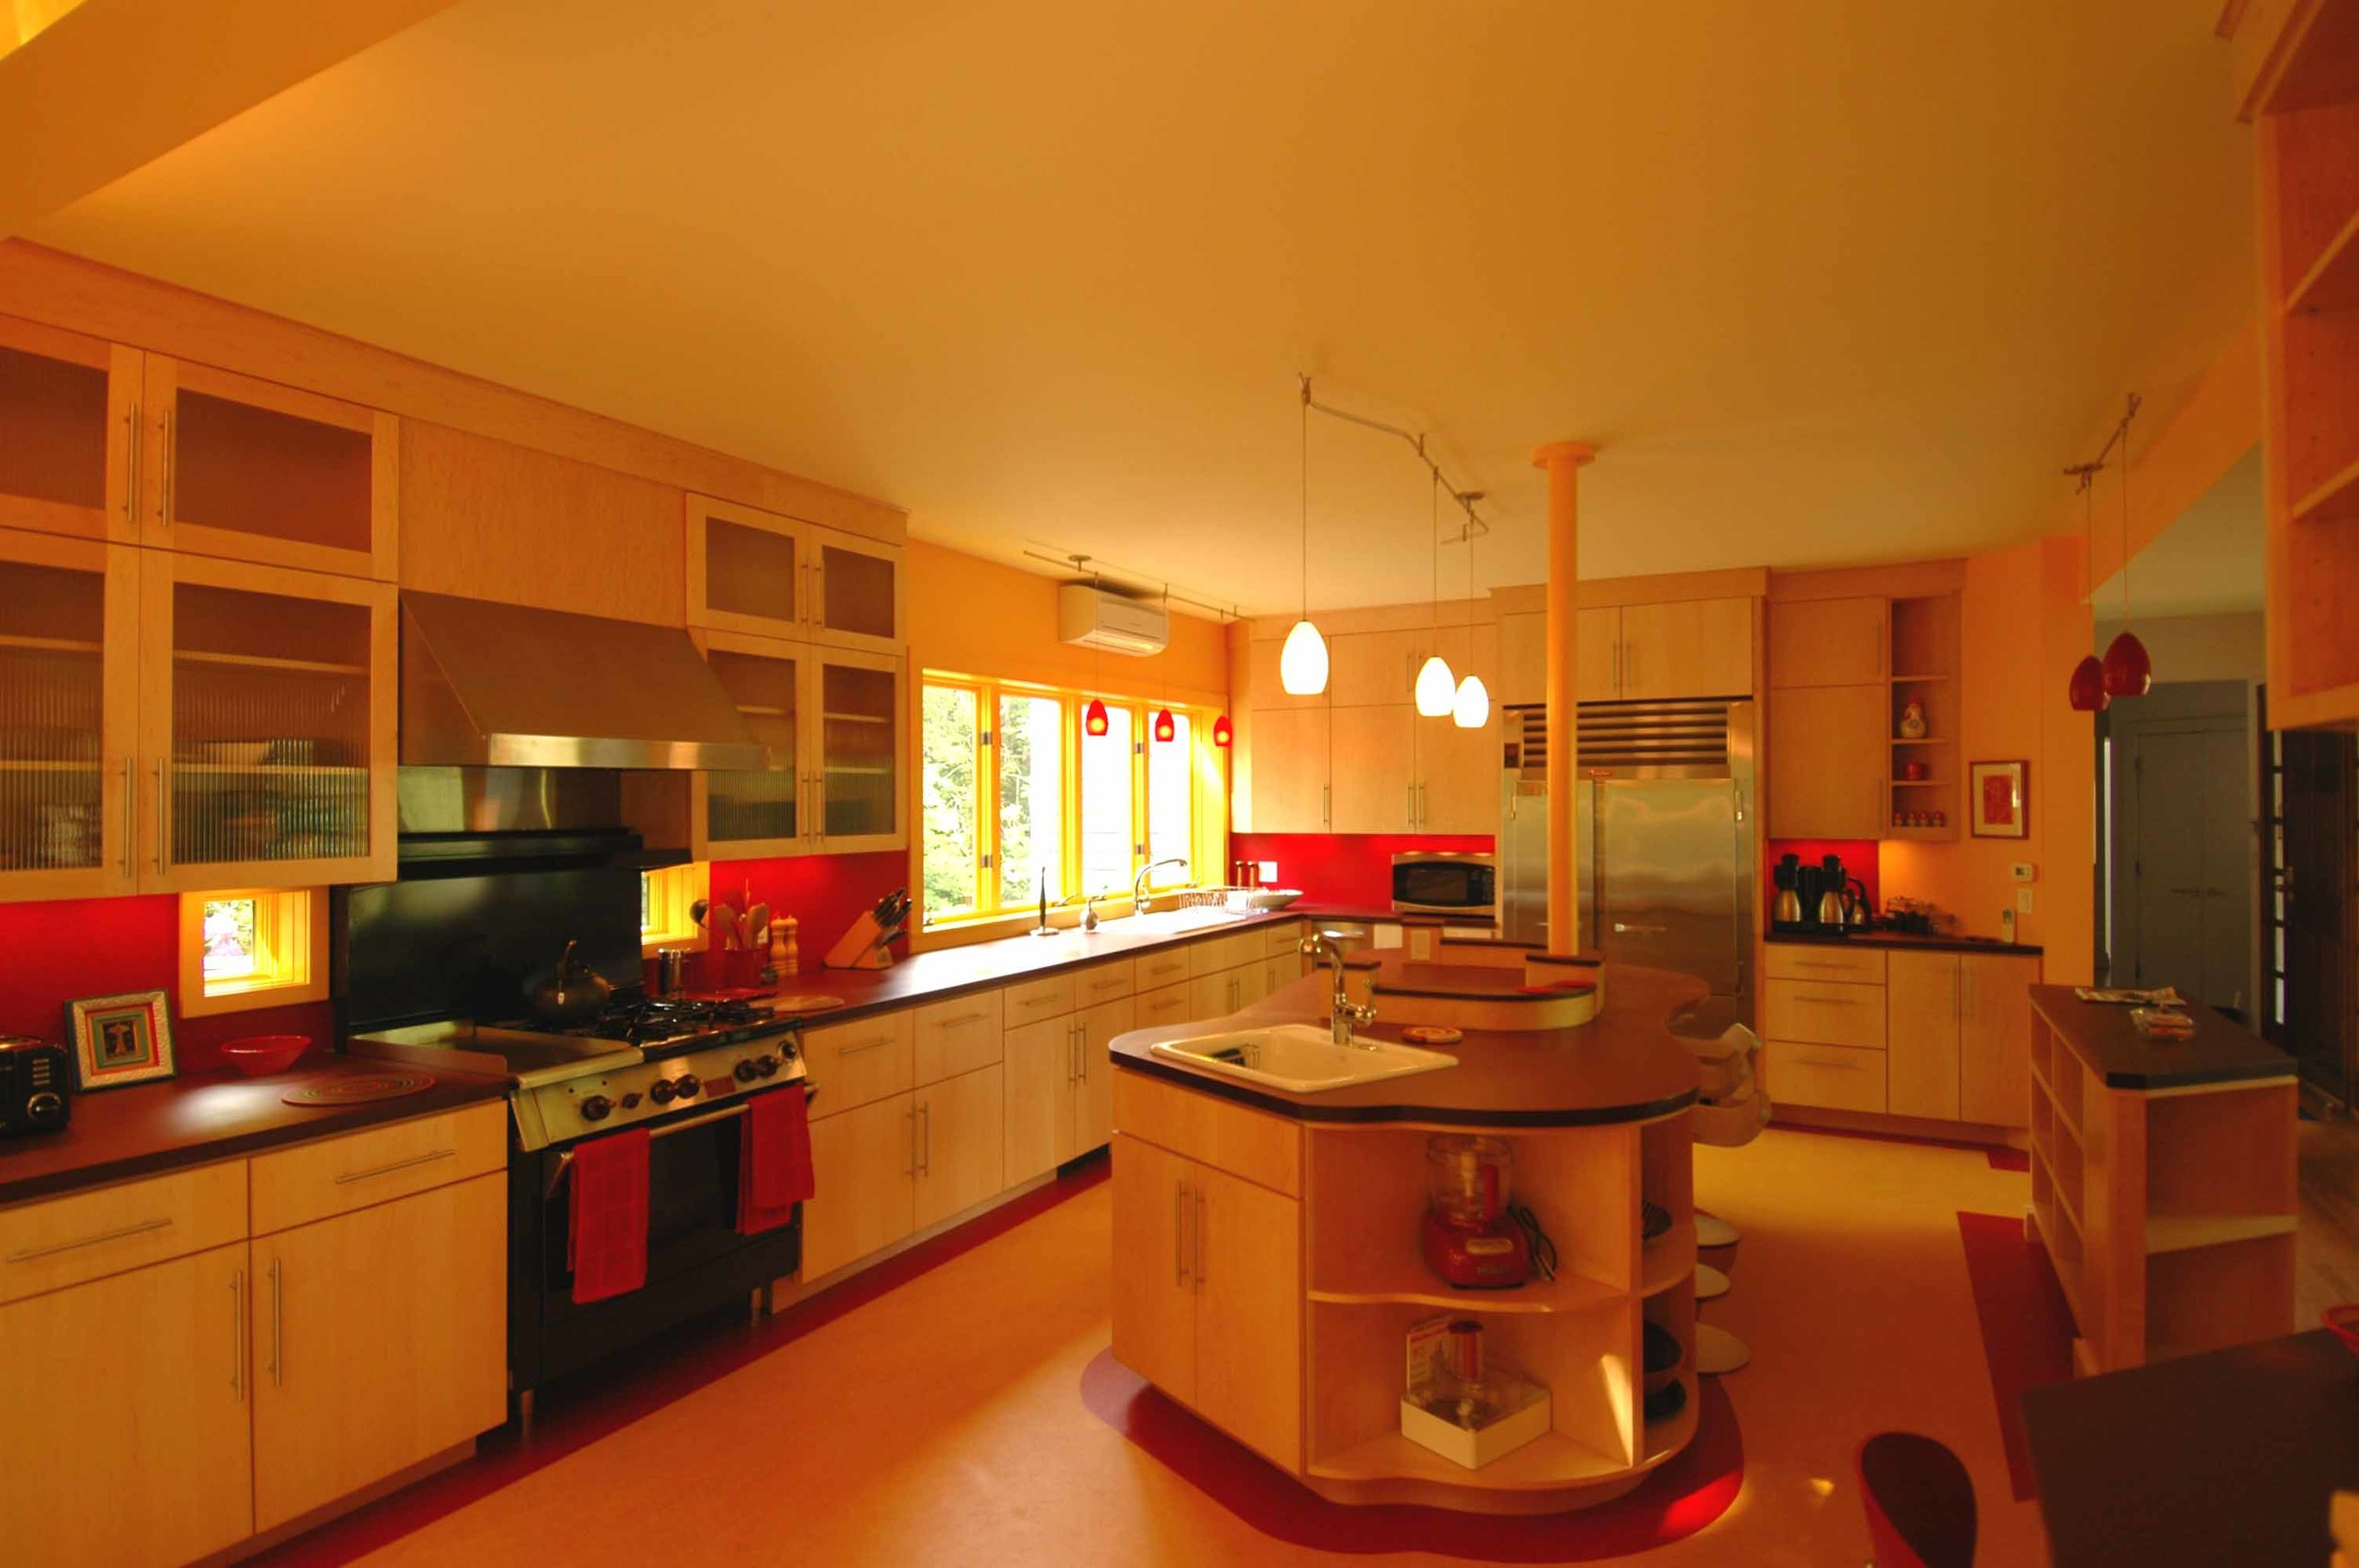 Alternate angle of newly expanded kitchen area.